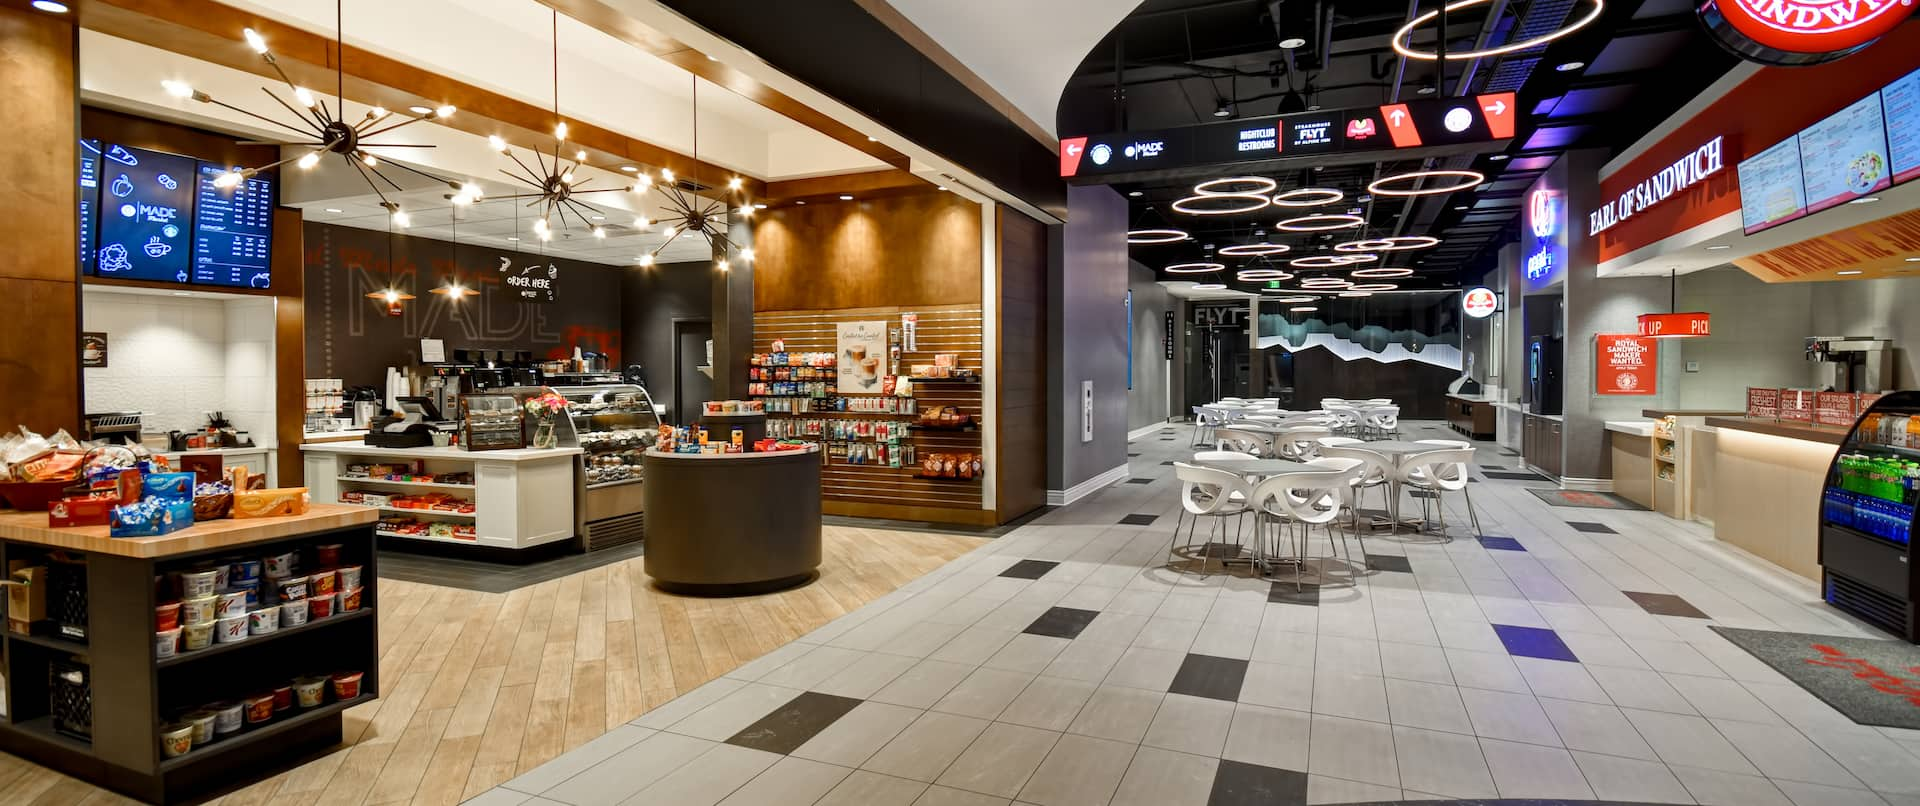 View of Food Court FLYT Marcos Pizza & Earl of Sandwich